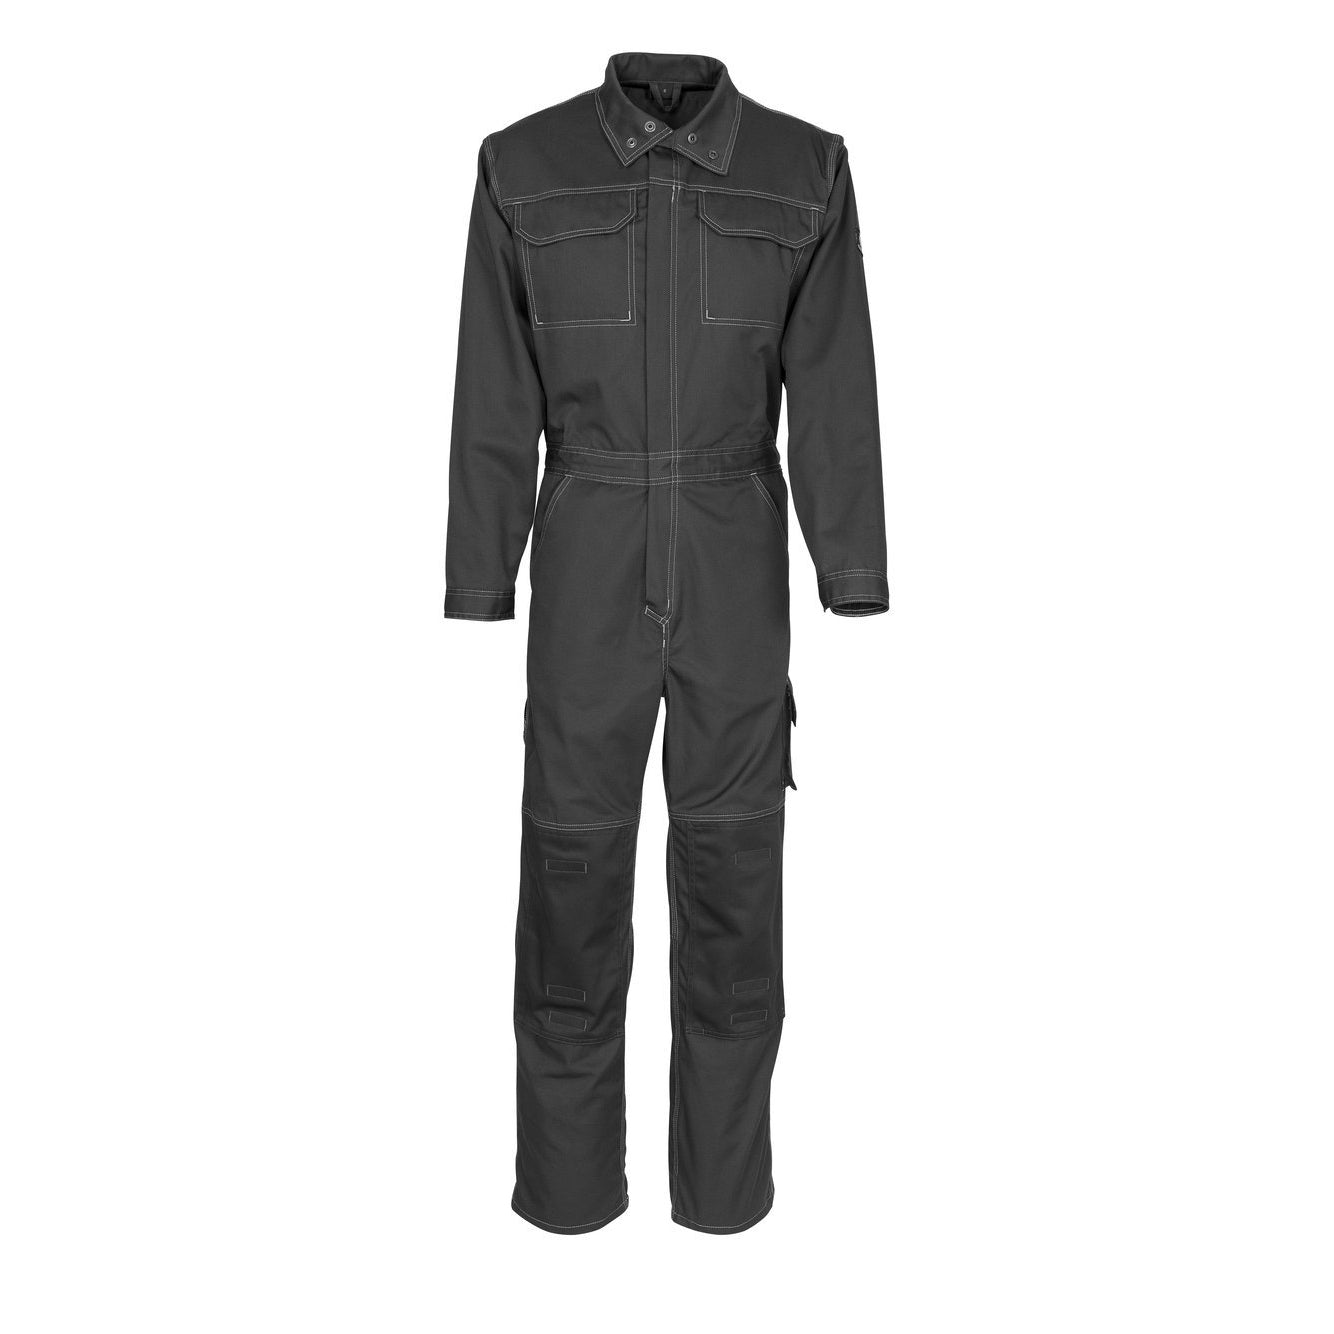 Mascot Danville Industry Boilersuit With Kneepad Pockets